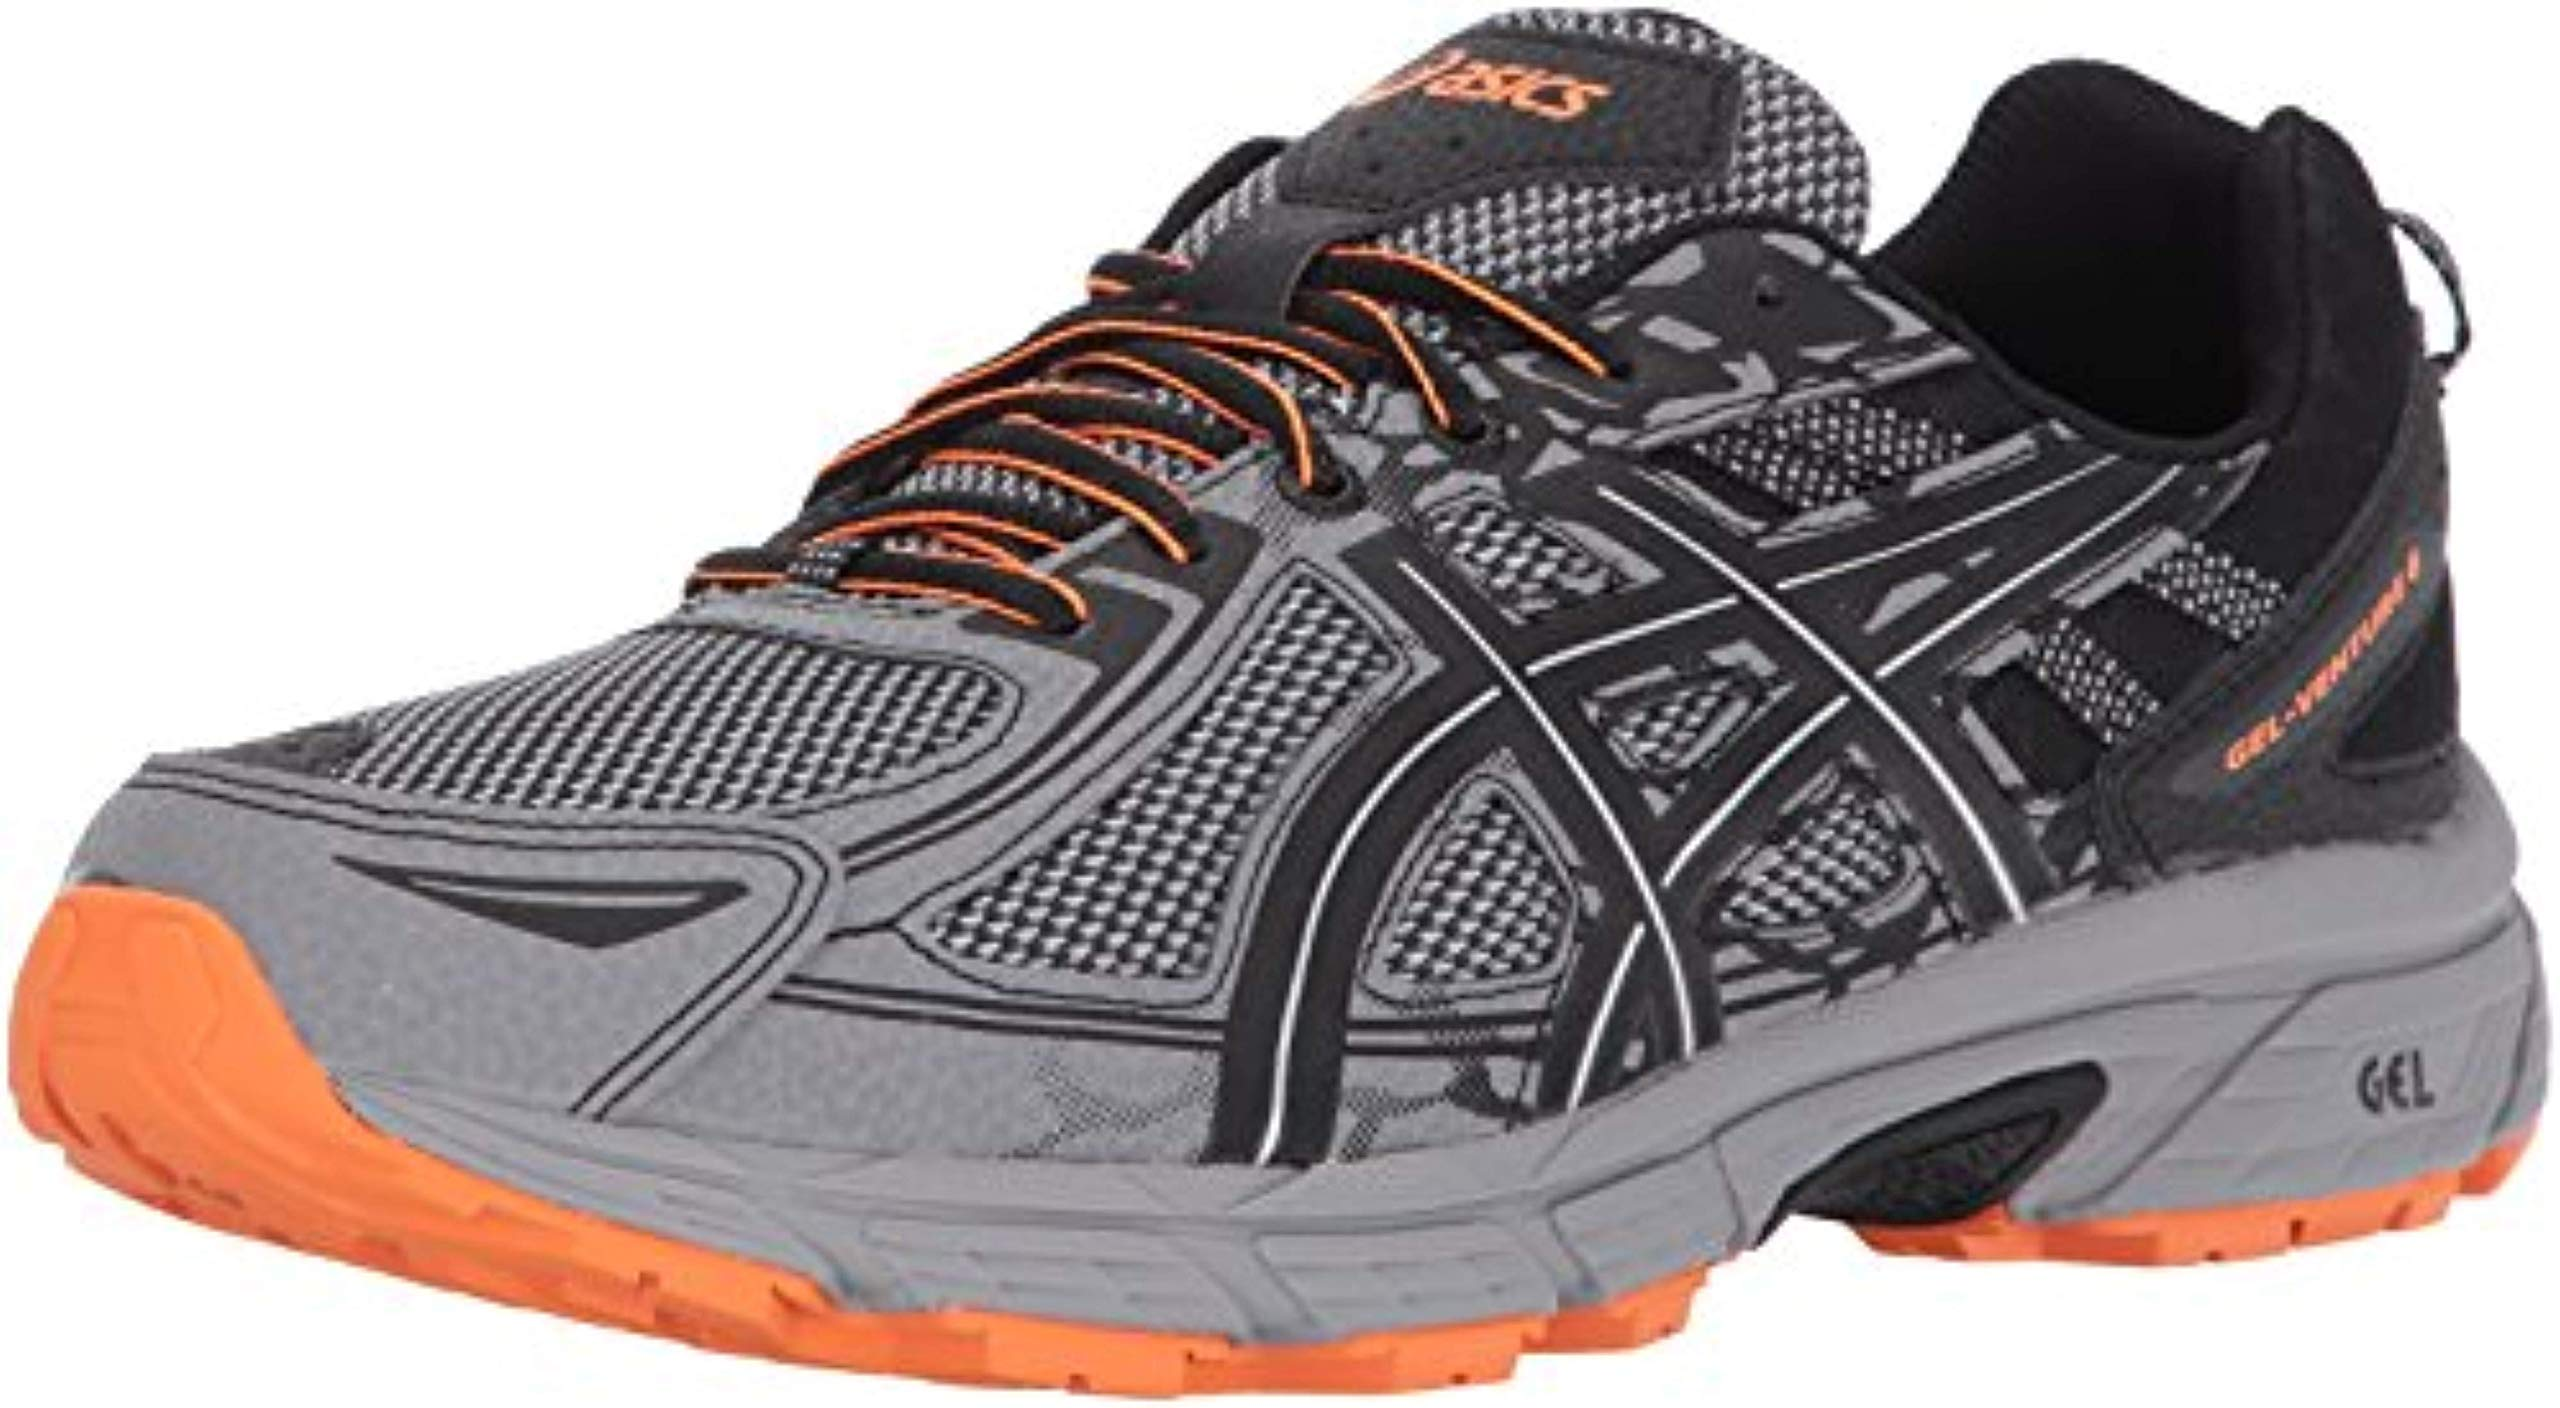 ASICS Mens Gel-Venture 6 Running Shoe, Frost Grey/Phantom/Black, 11.5 by ASICS